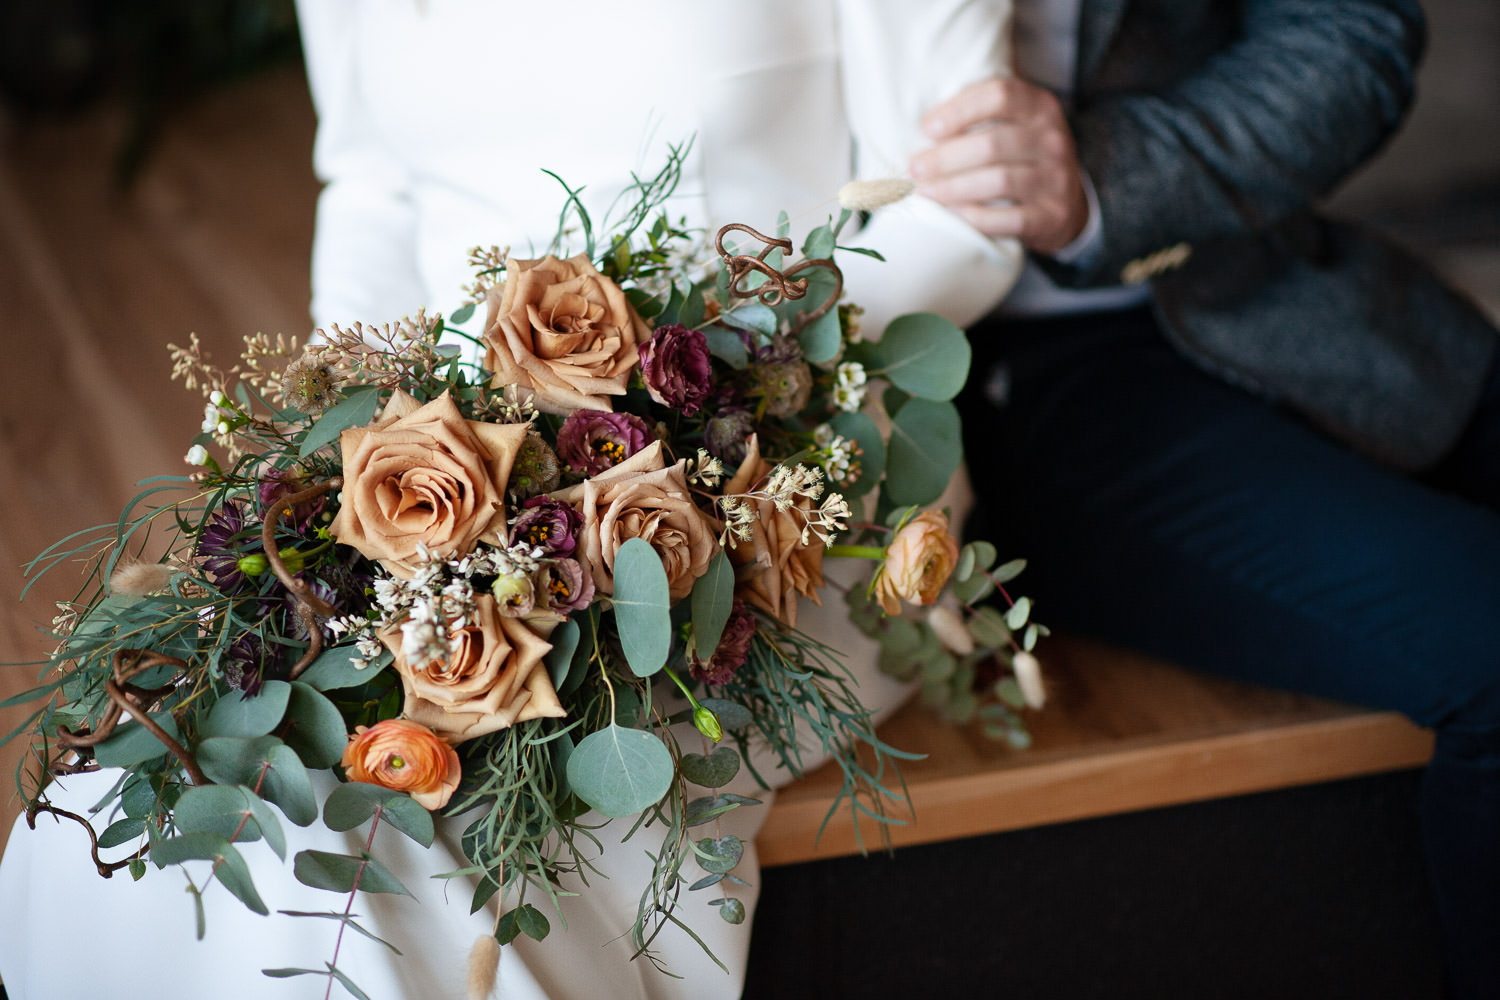 bridal bouquet for Calgary intimate weddings and elopements captured by Tara Whittaker Photography